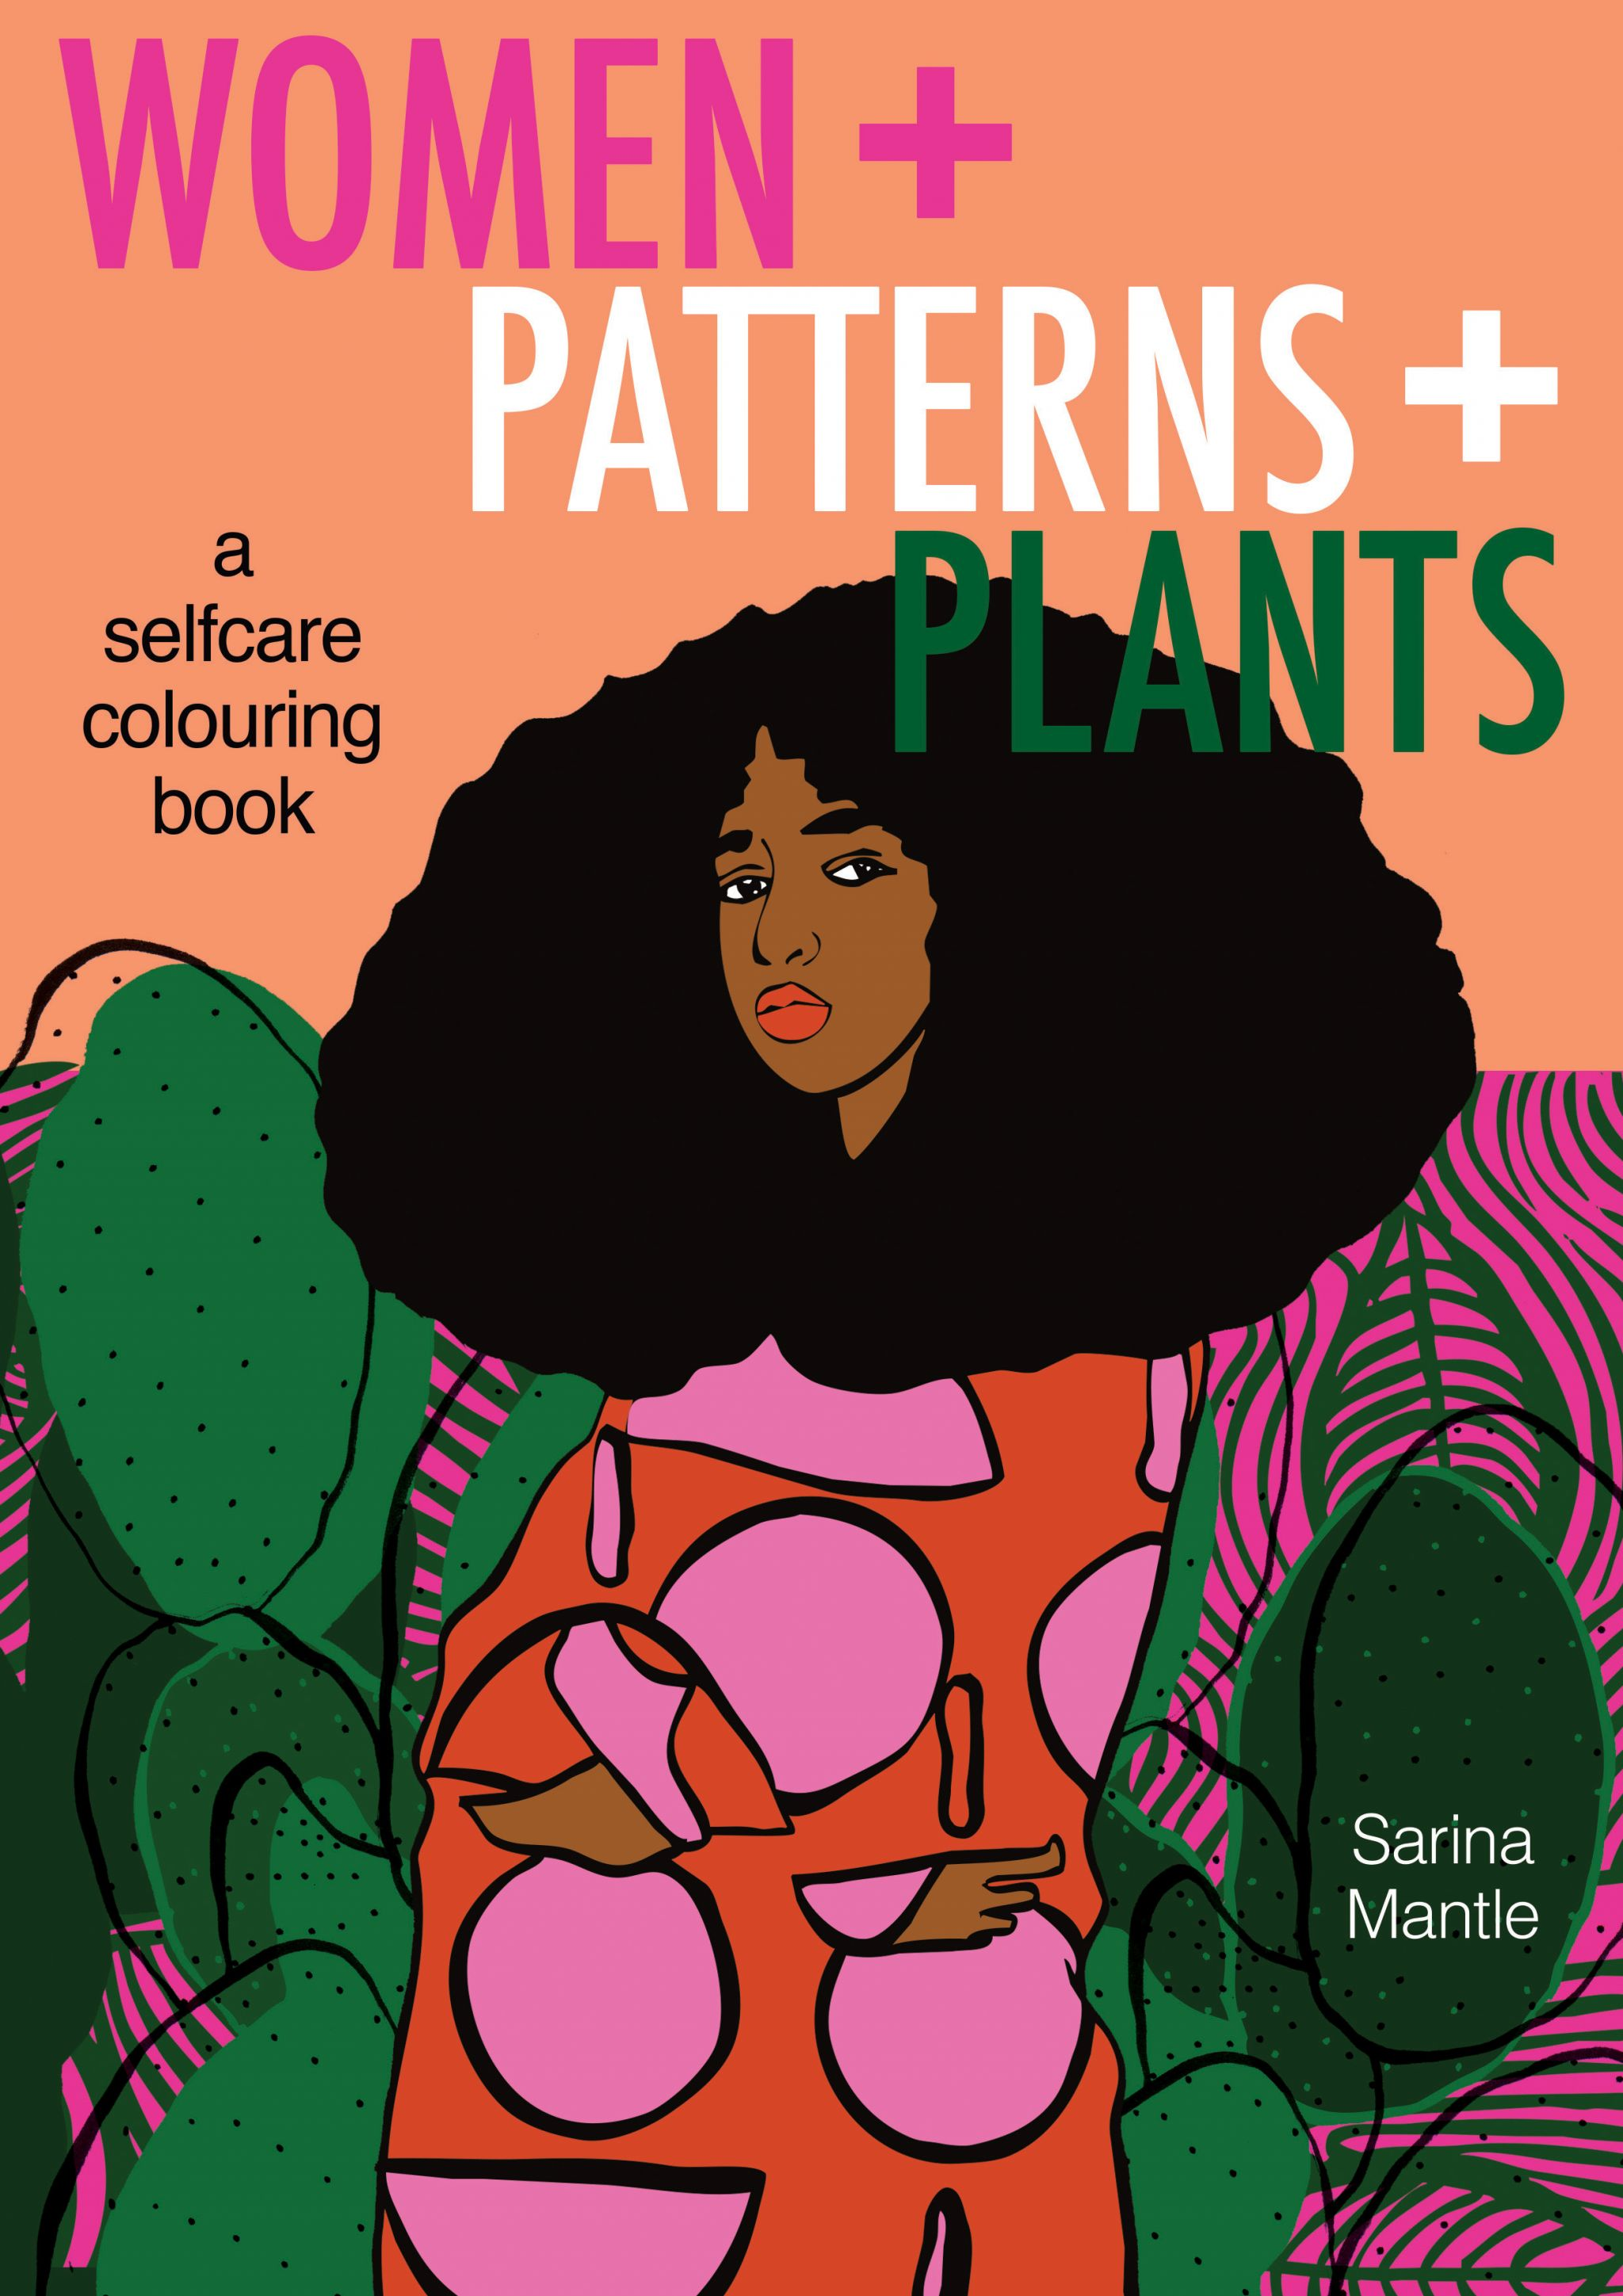 women patterns plants sarina mantle